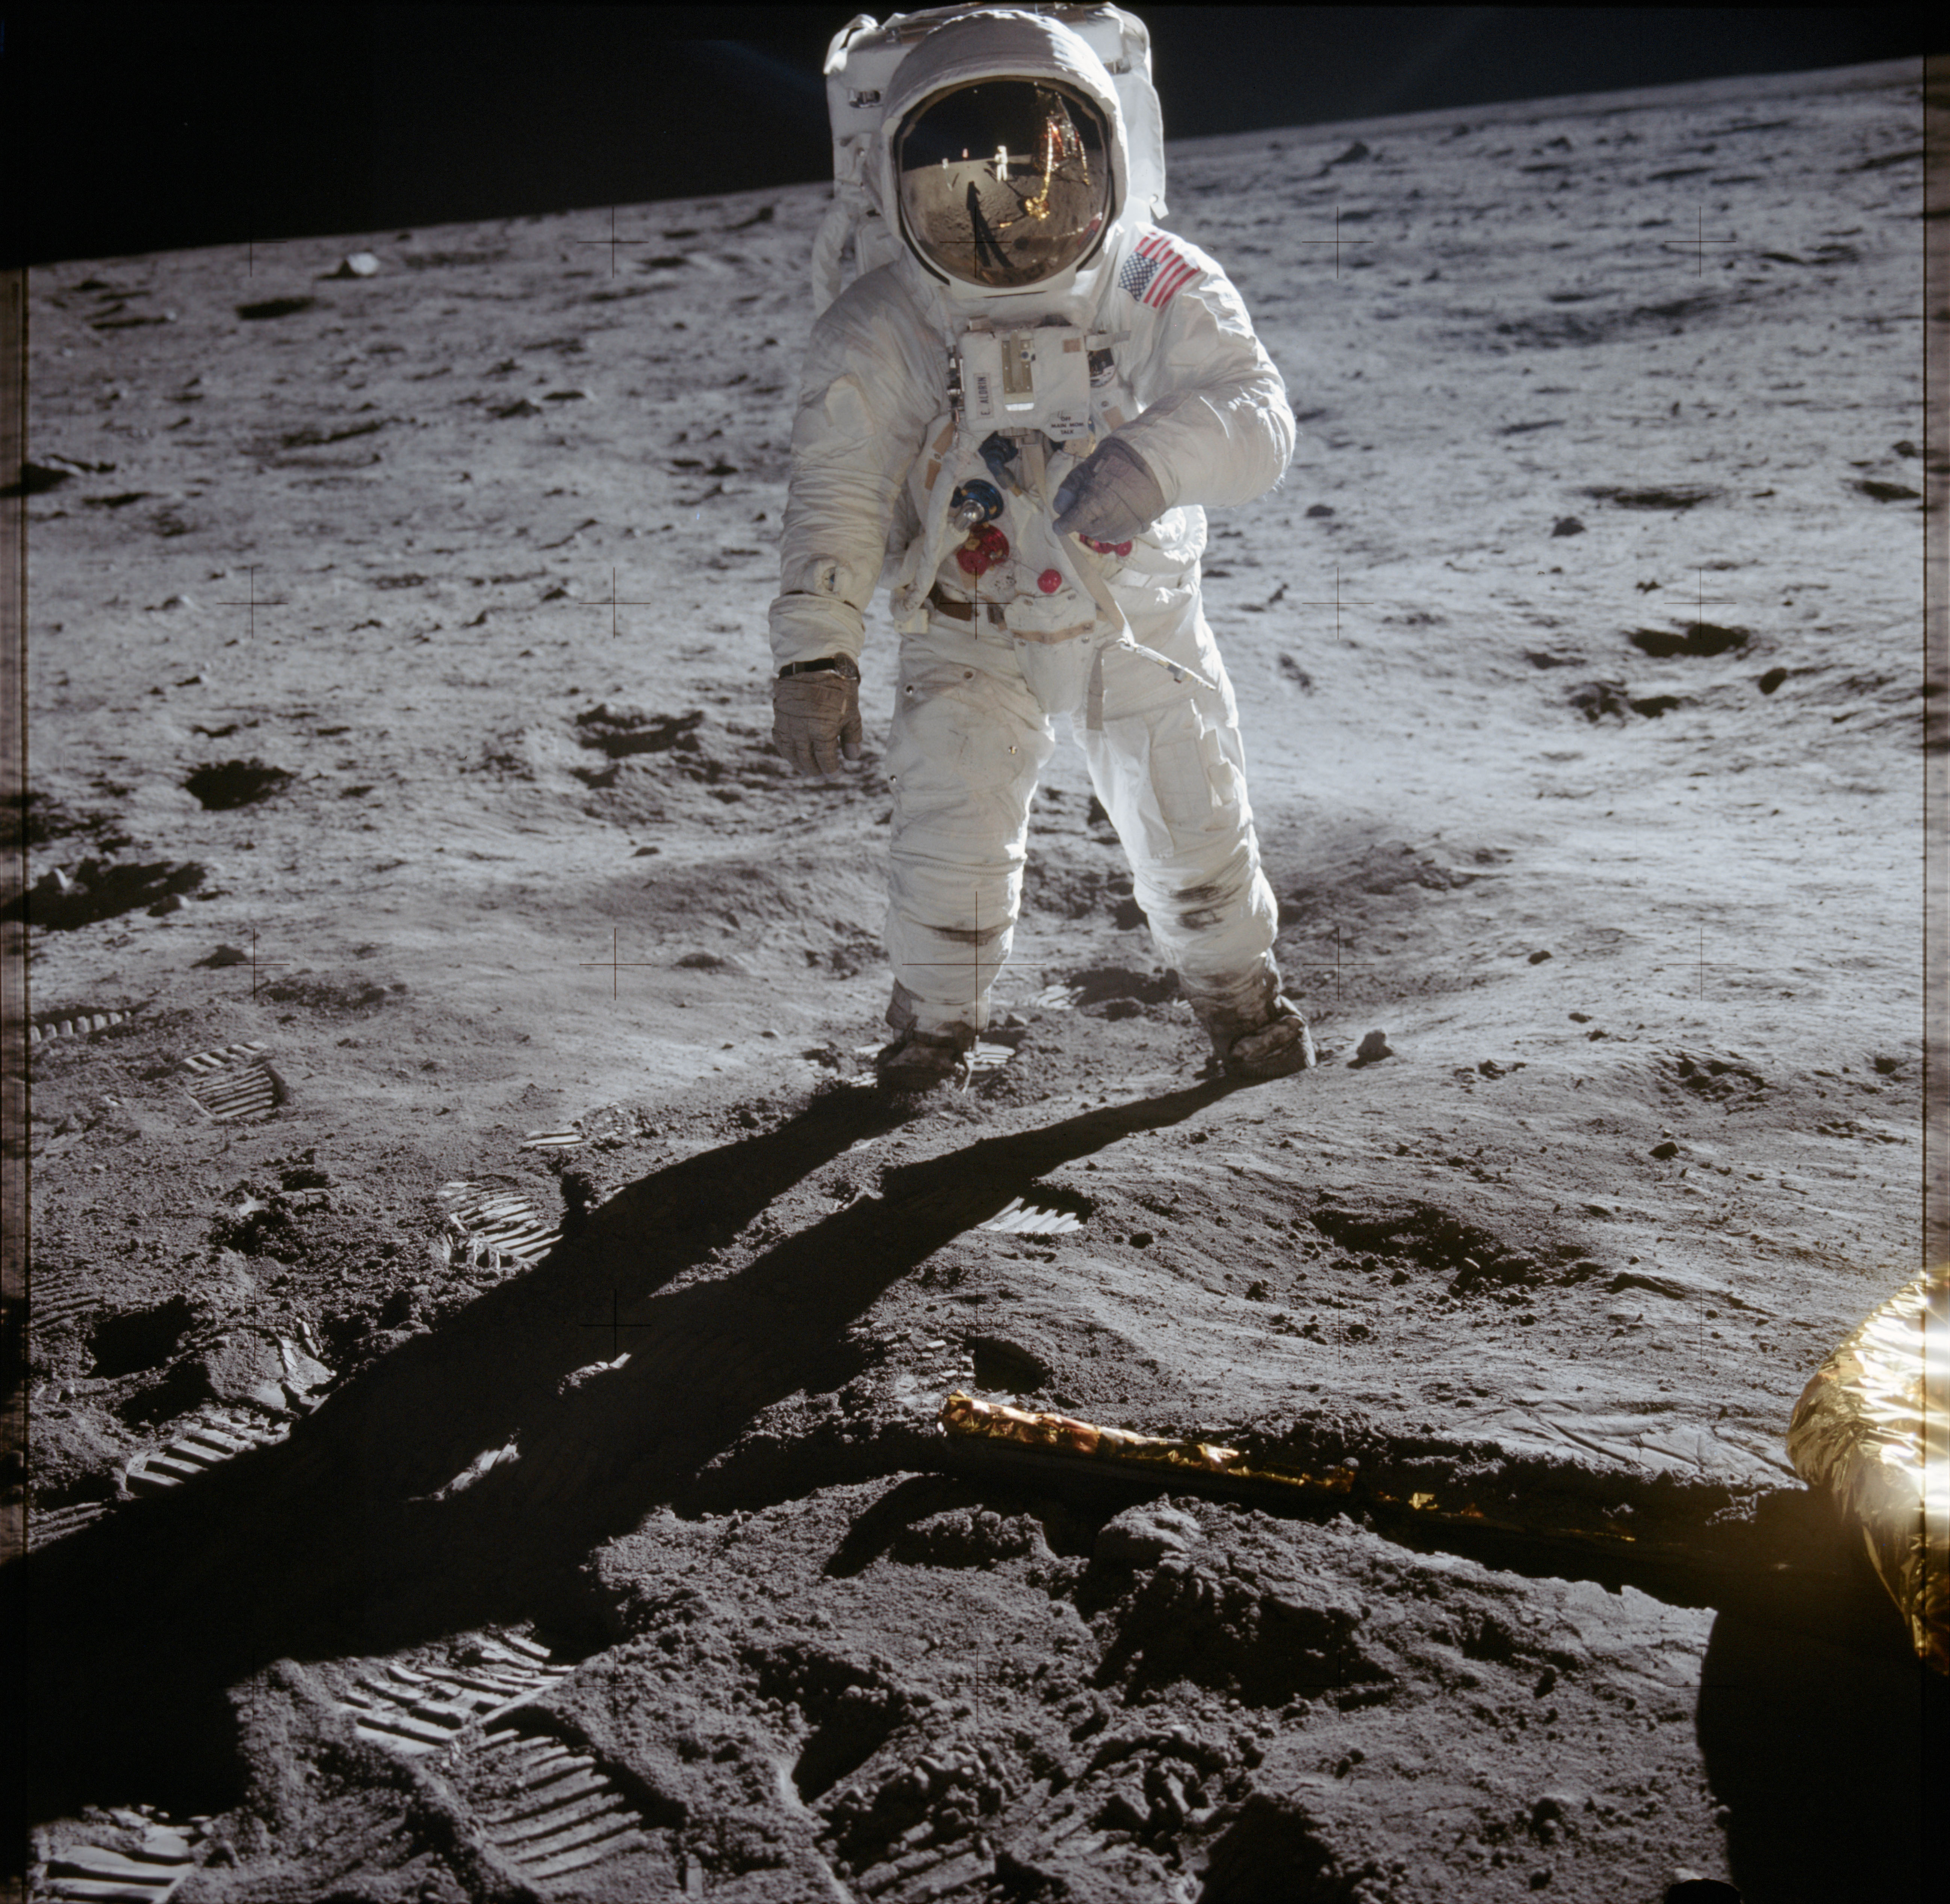 Buzz Aldrin on the surface of the Moon